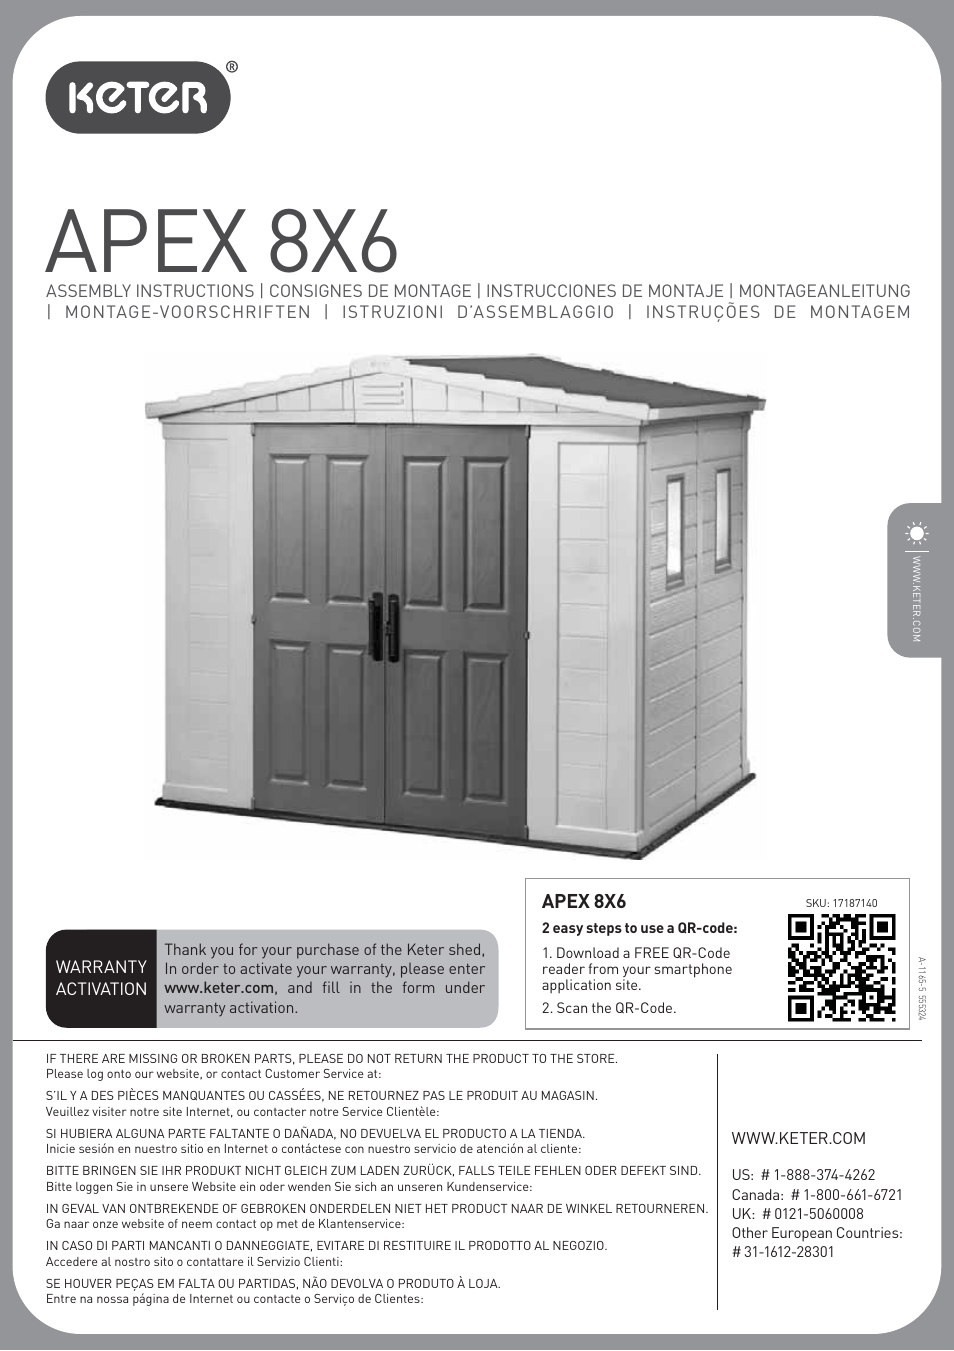 Keter Apex 8x6 User Manual 32 Pages